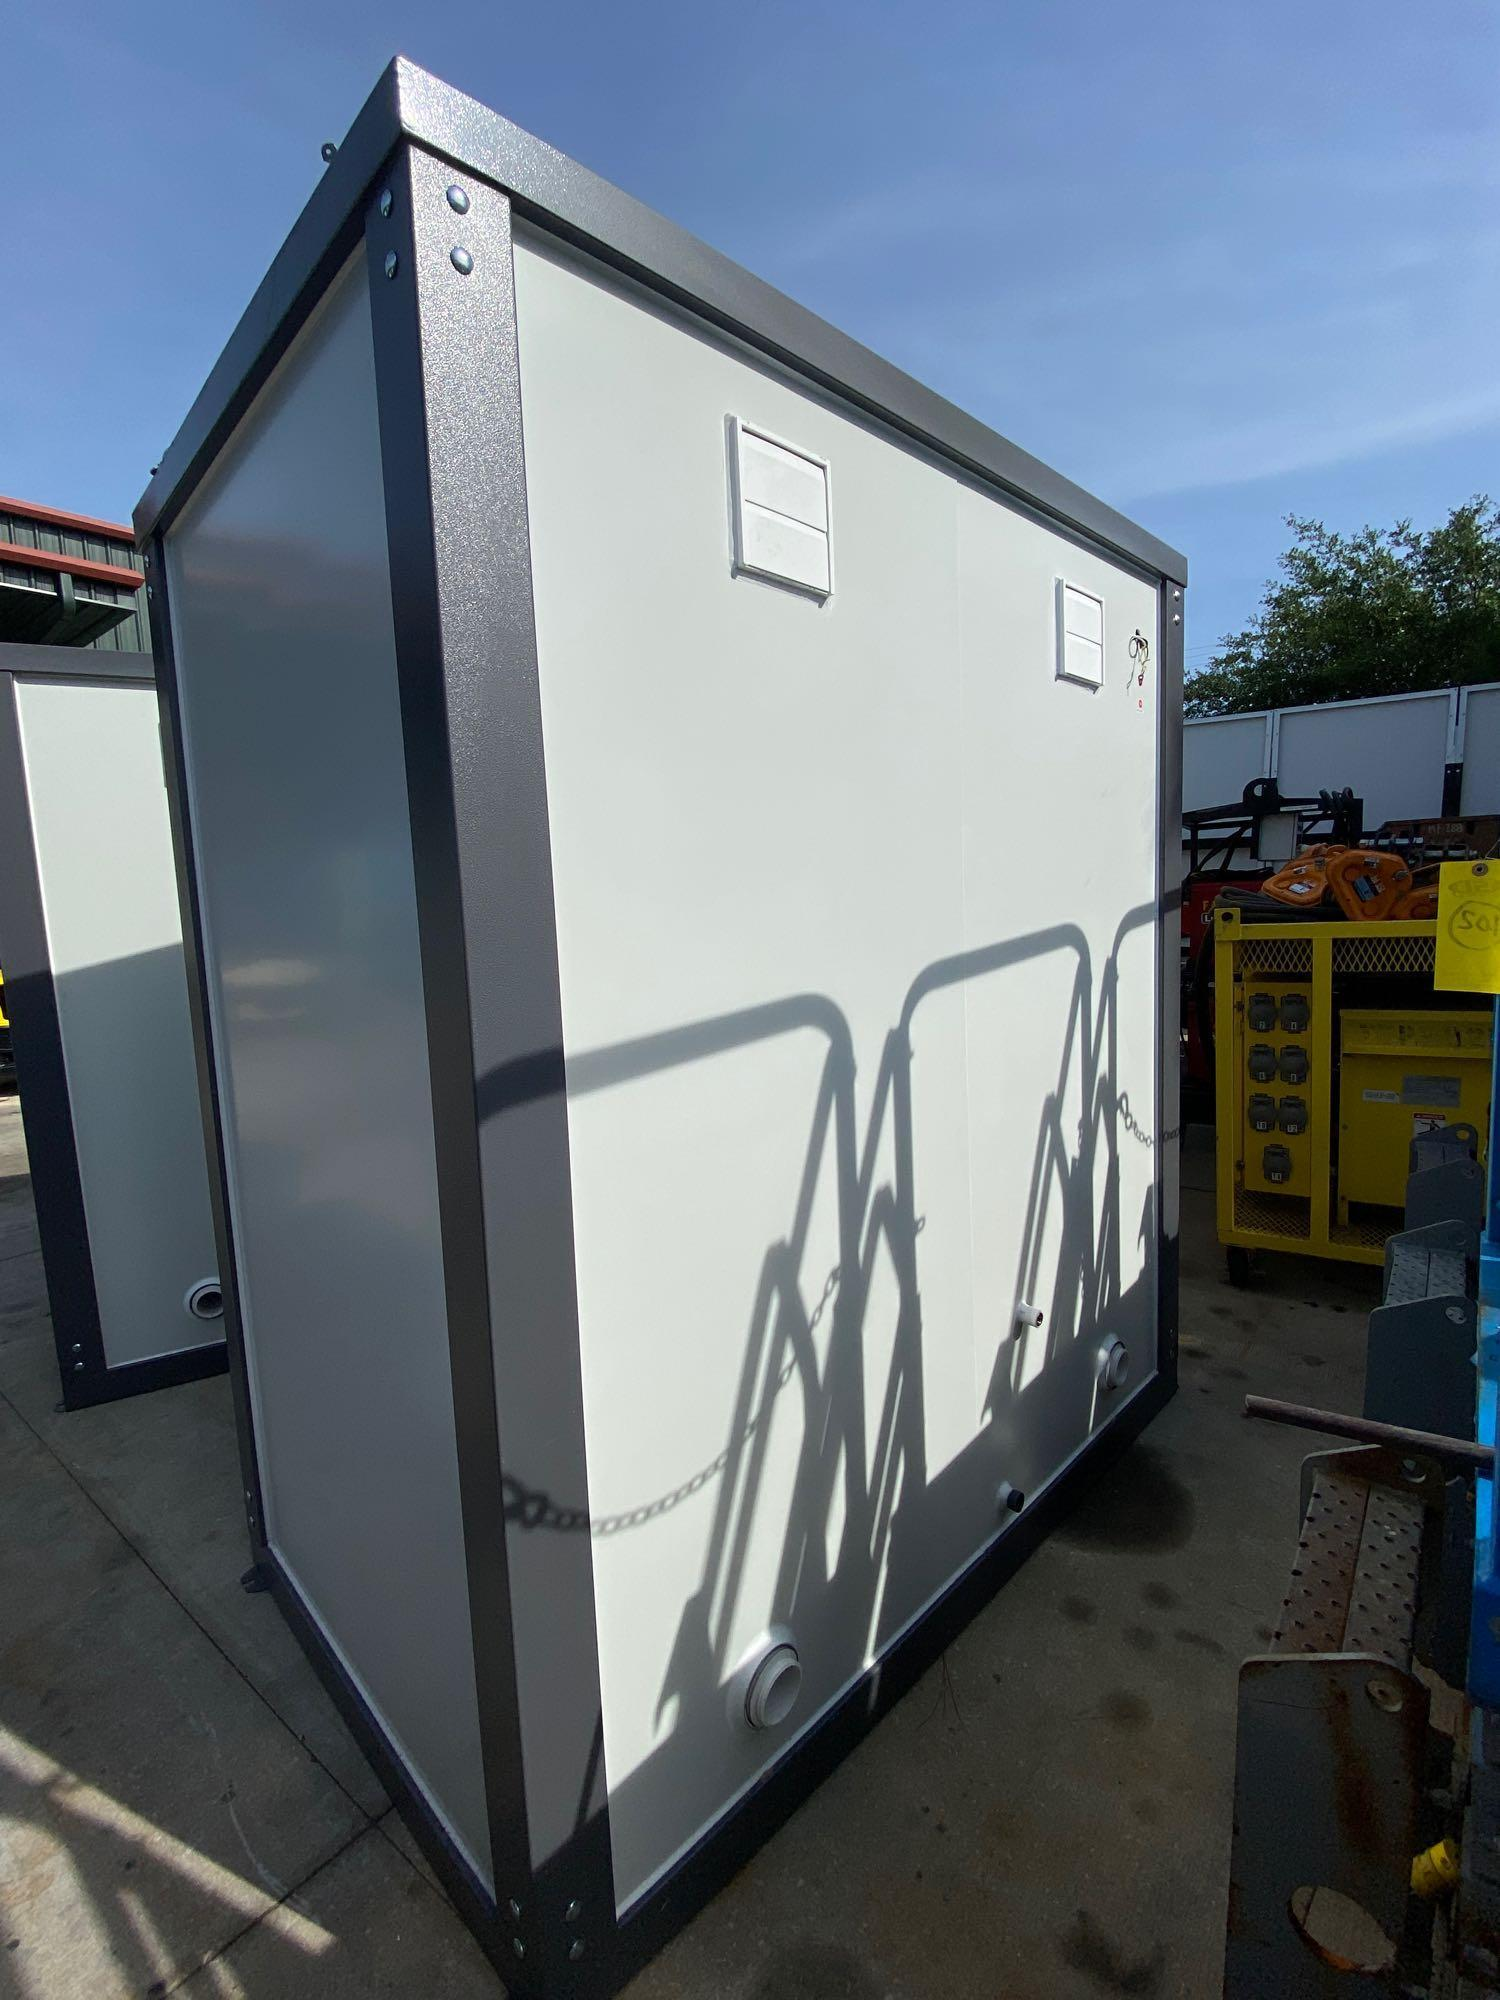 """NEW/UNUSED PORTABLE BATHROOM UNIT, TWO STALLS, PLUMBING AND ELECTRIC HOOKUP, 81"""" WIDE 90"""" TALL 51"""" D - Image 3 of 7"""